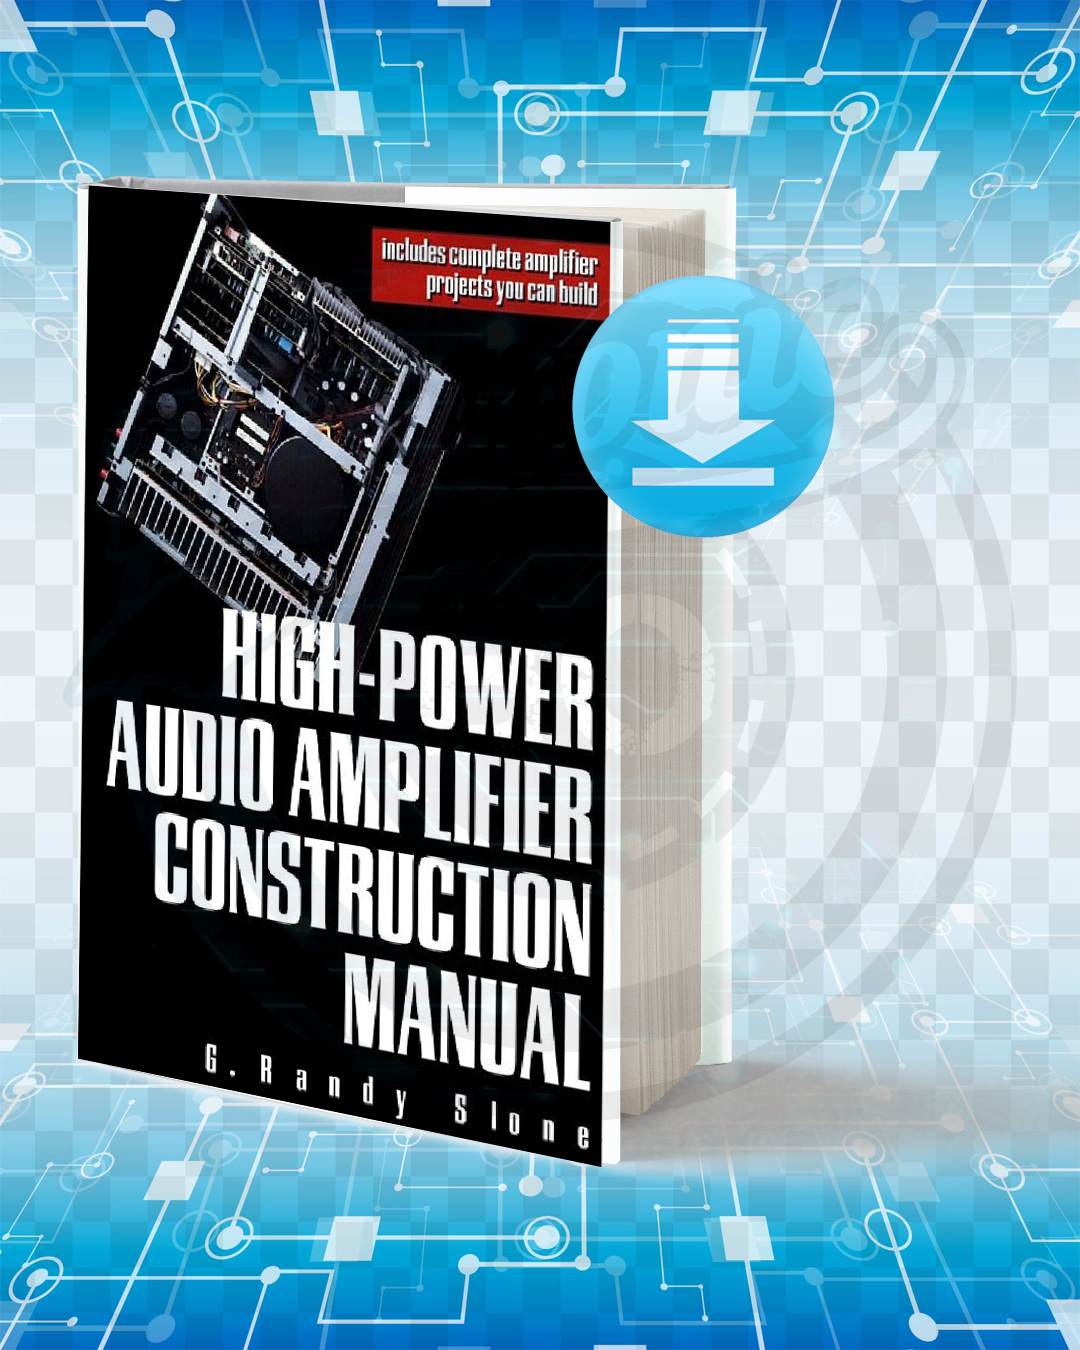 Free Book High-Power Audio Amplifier Construction Manual pdf.